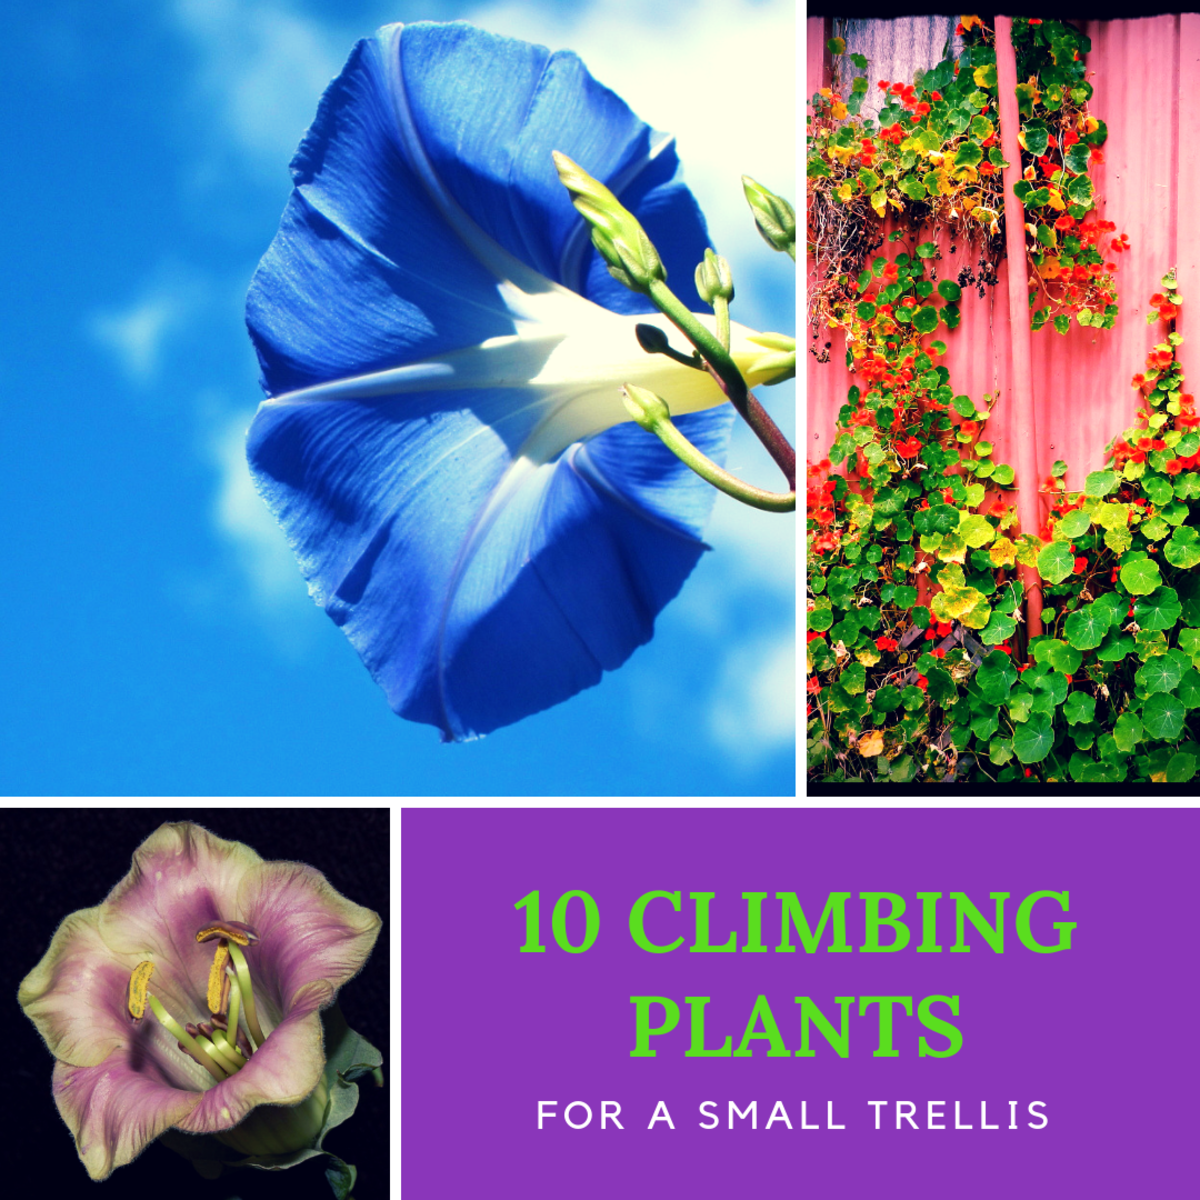 If you're looking for some great climbing plants to grow up a trellis and